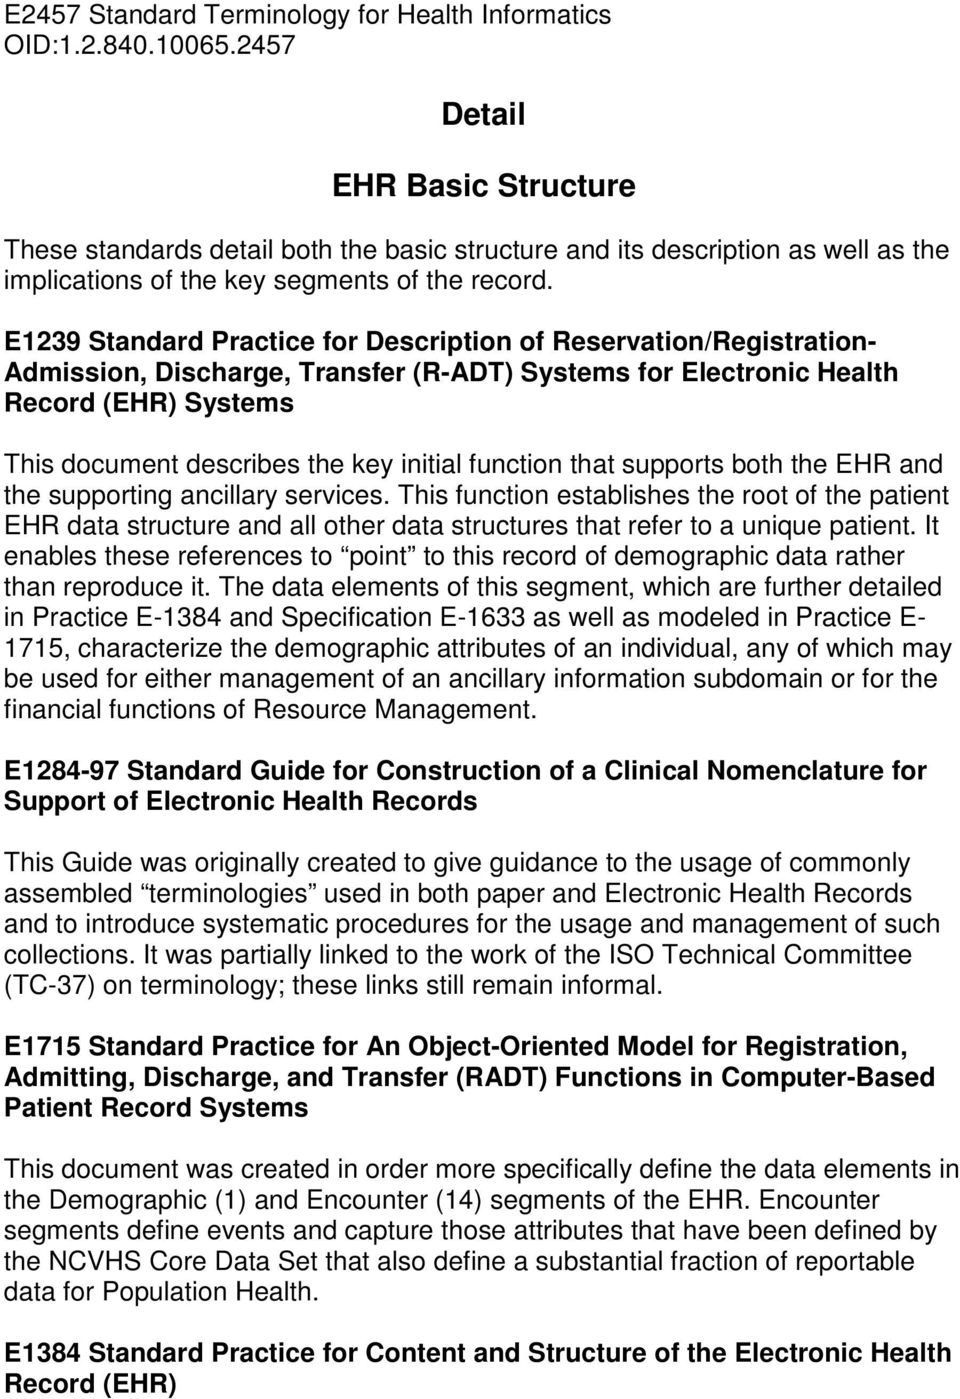 E1239 Standard Practice for Description of Reservation/Registration- Admission, Discharge, Transfer (R-ADT) Systems for Electronic Health Record (EHR) Systems This document describes the key initial